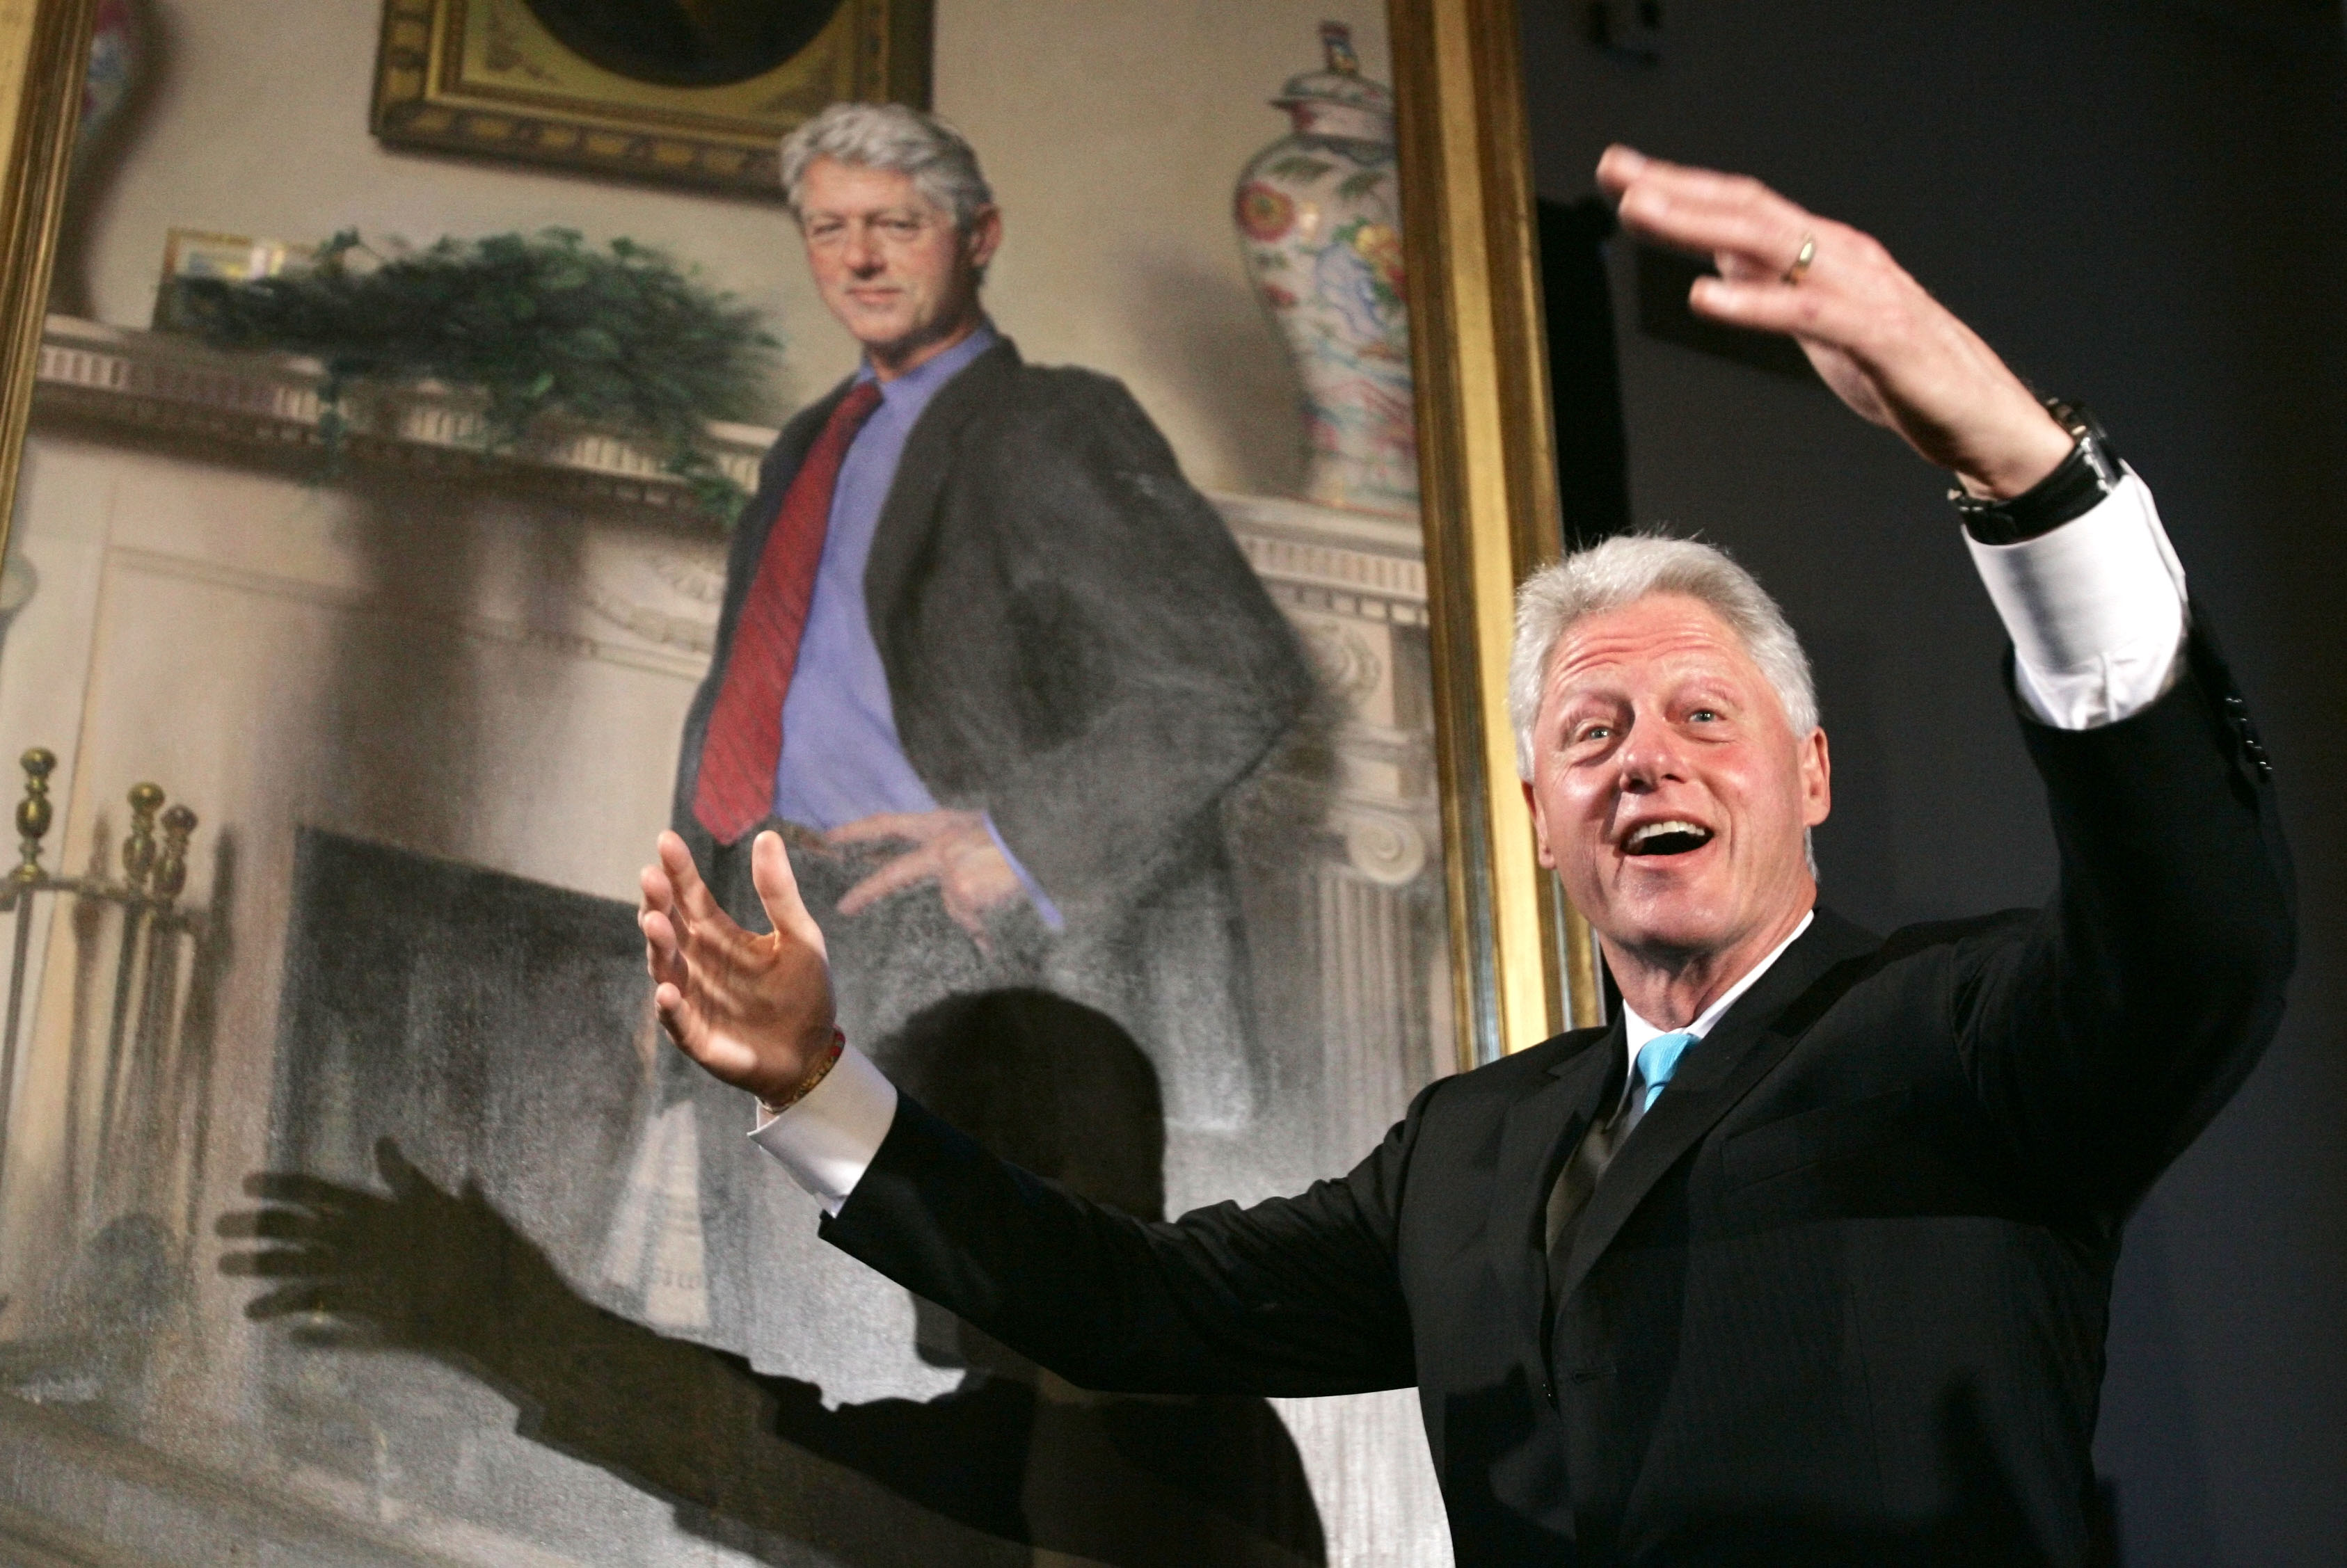 Former President Bill Clinton gestures after the portraits of his wife, Hillary Rodham Clinton and him, were revealed on April 24, 2006, at the Smithsonian Castle Building in Washington, D.C.